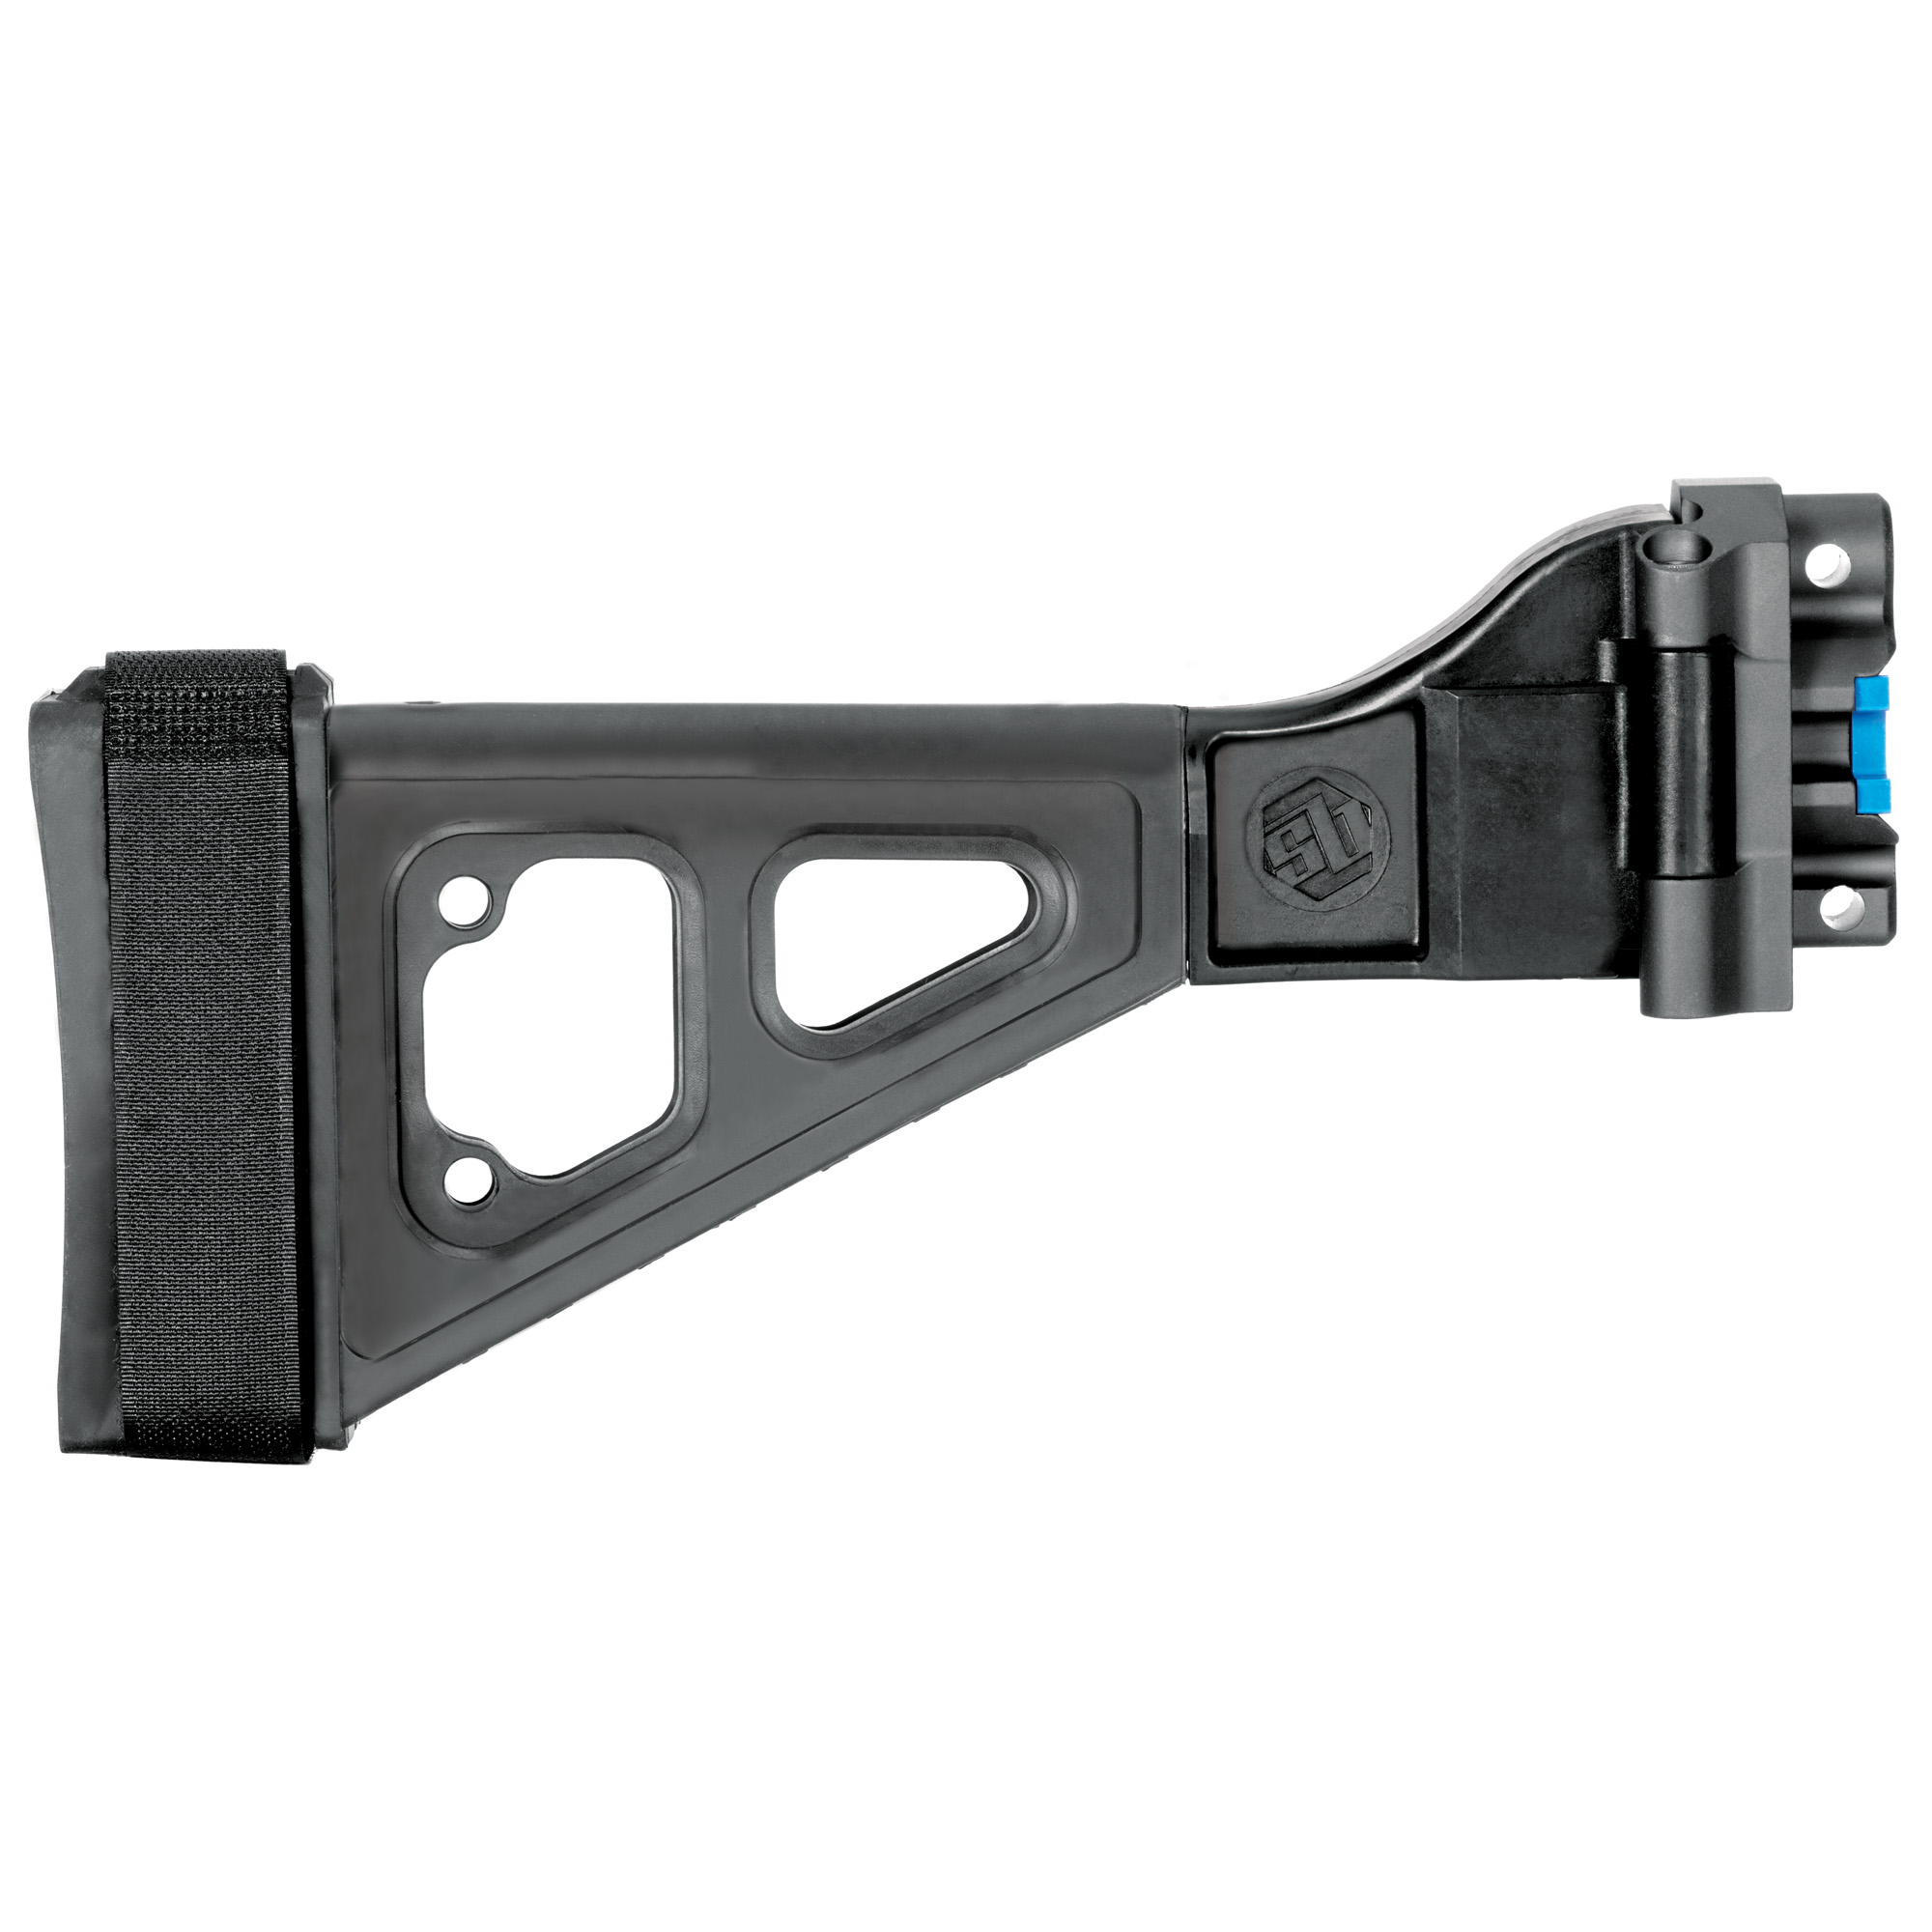 SB Tactical SP5K/MP5K pistol brace